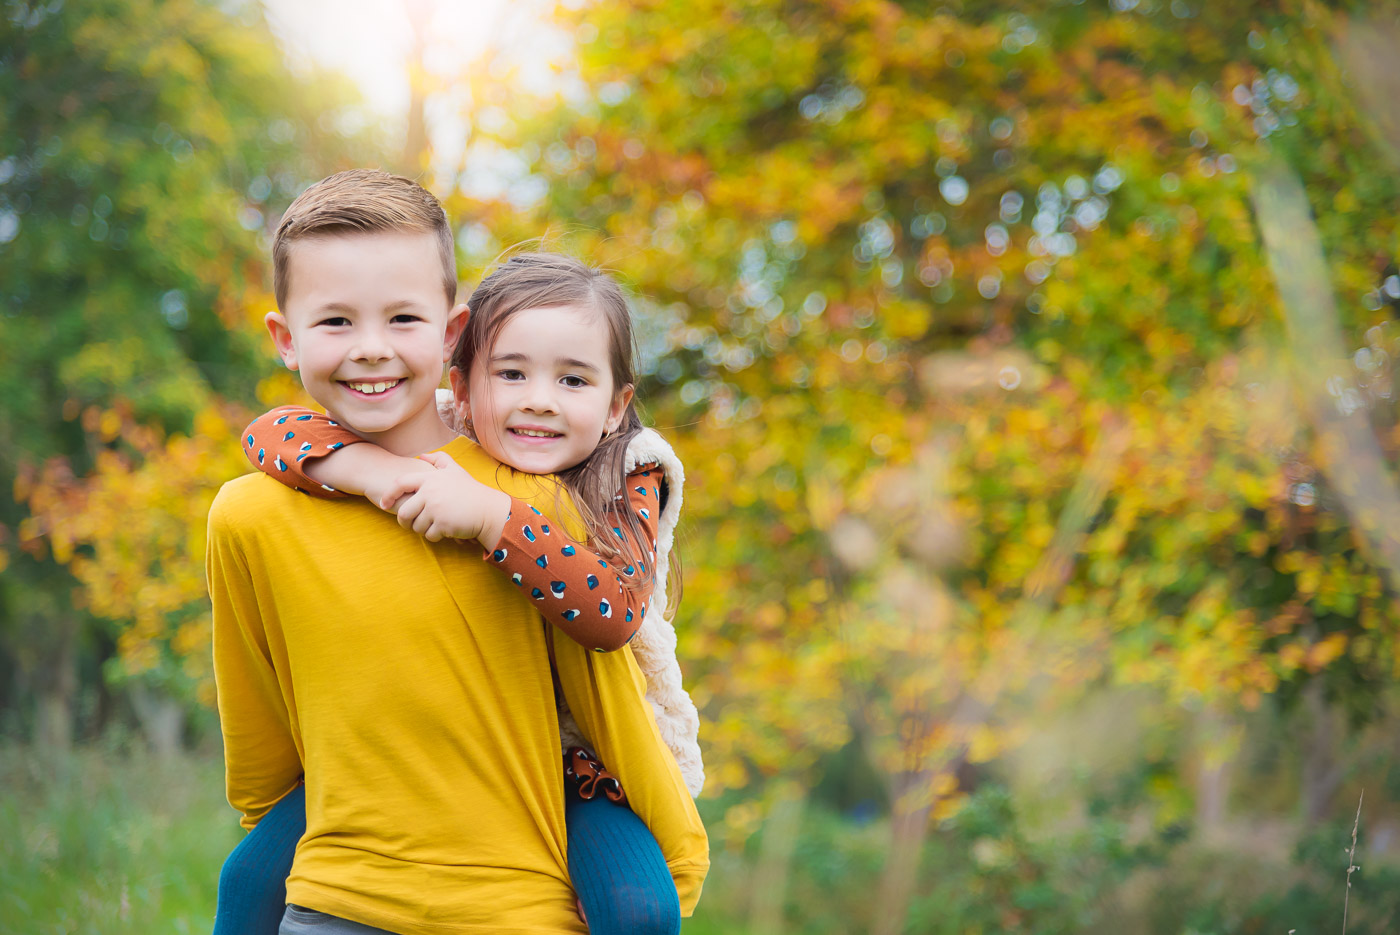 Brother with amazing smile carrying his younger sister on back through colourful autumn woods